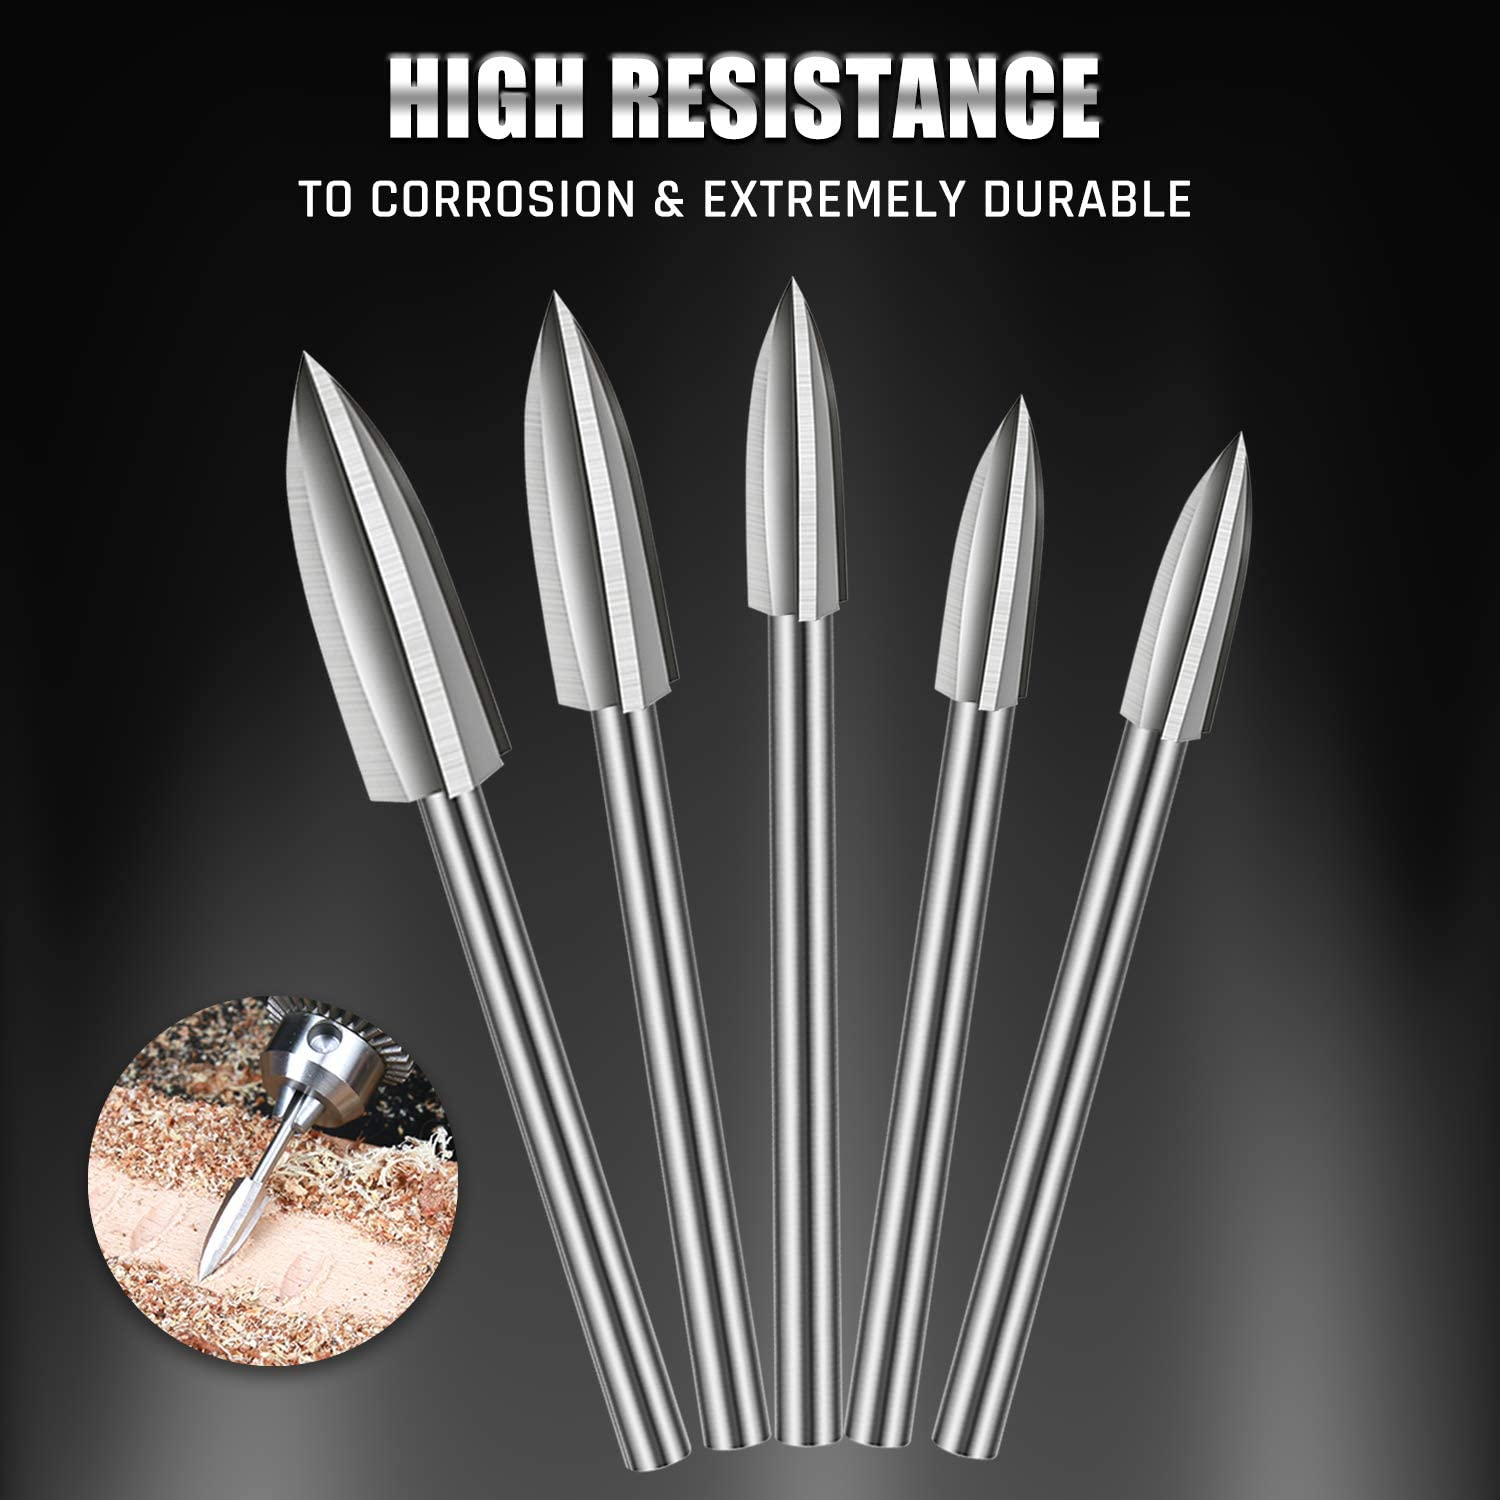 5PCS Wood Carving and Engraving Drill Bit Set Accessories Bit Universal Fitment for Rotary Tools